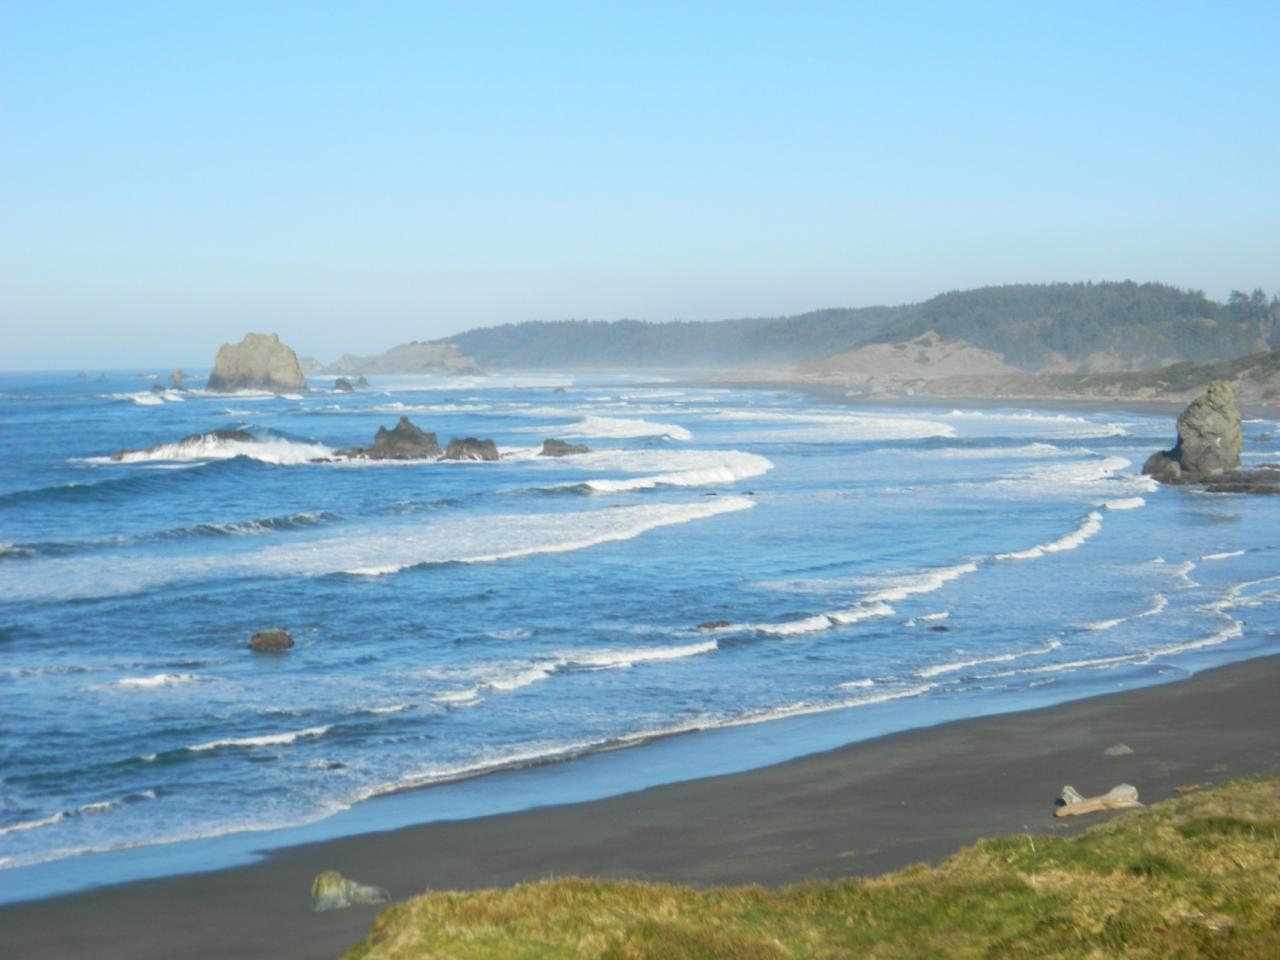 Half way down the beach at North Cape Blanco.  Good day for agates and sea glass, found some white and little green.